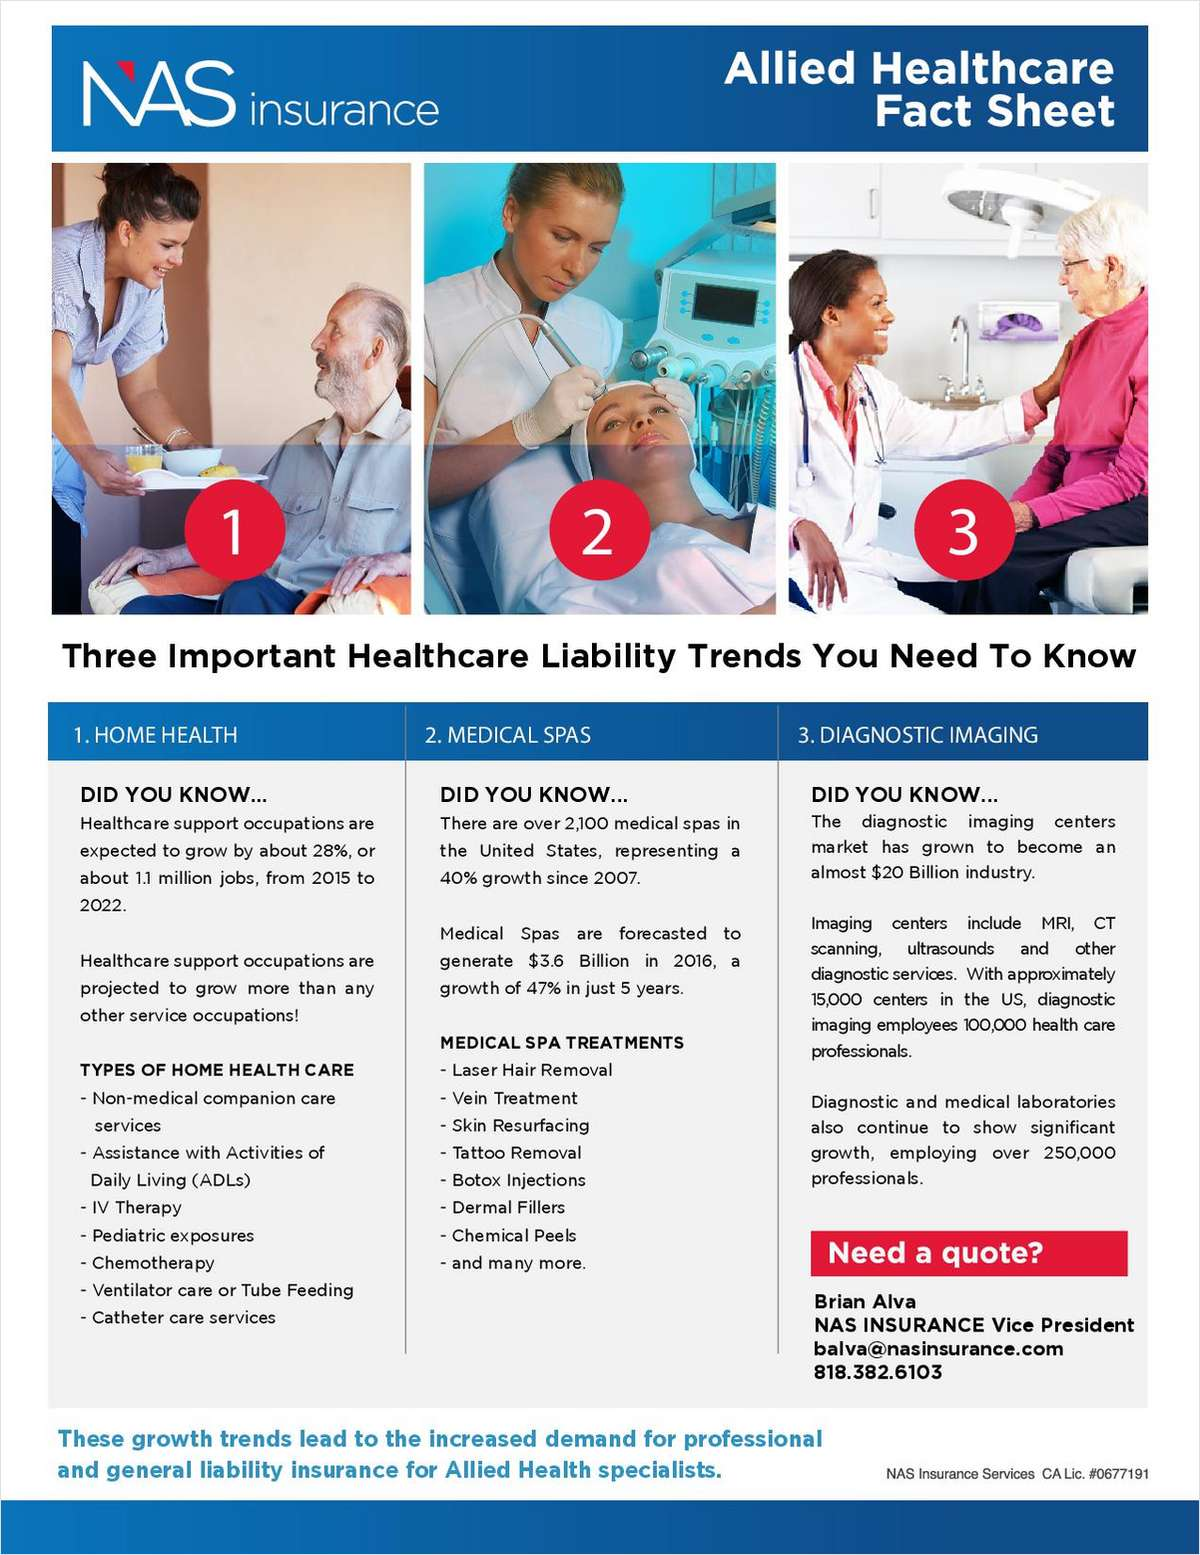 3 Healthcare Liability Trends You Need to Know